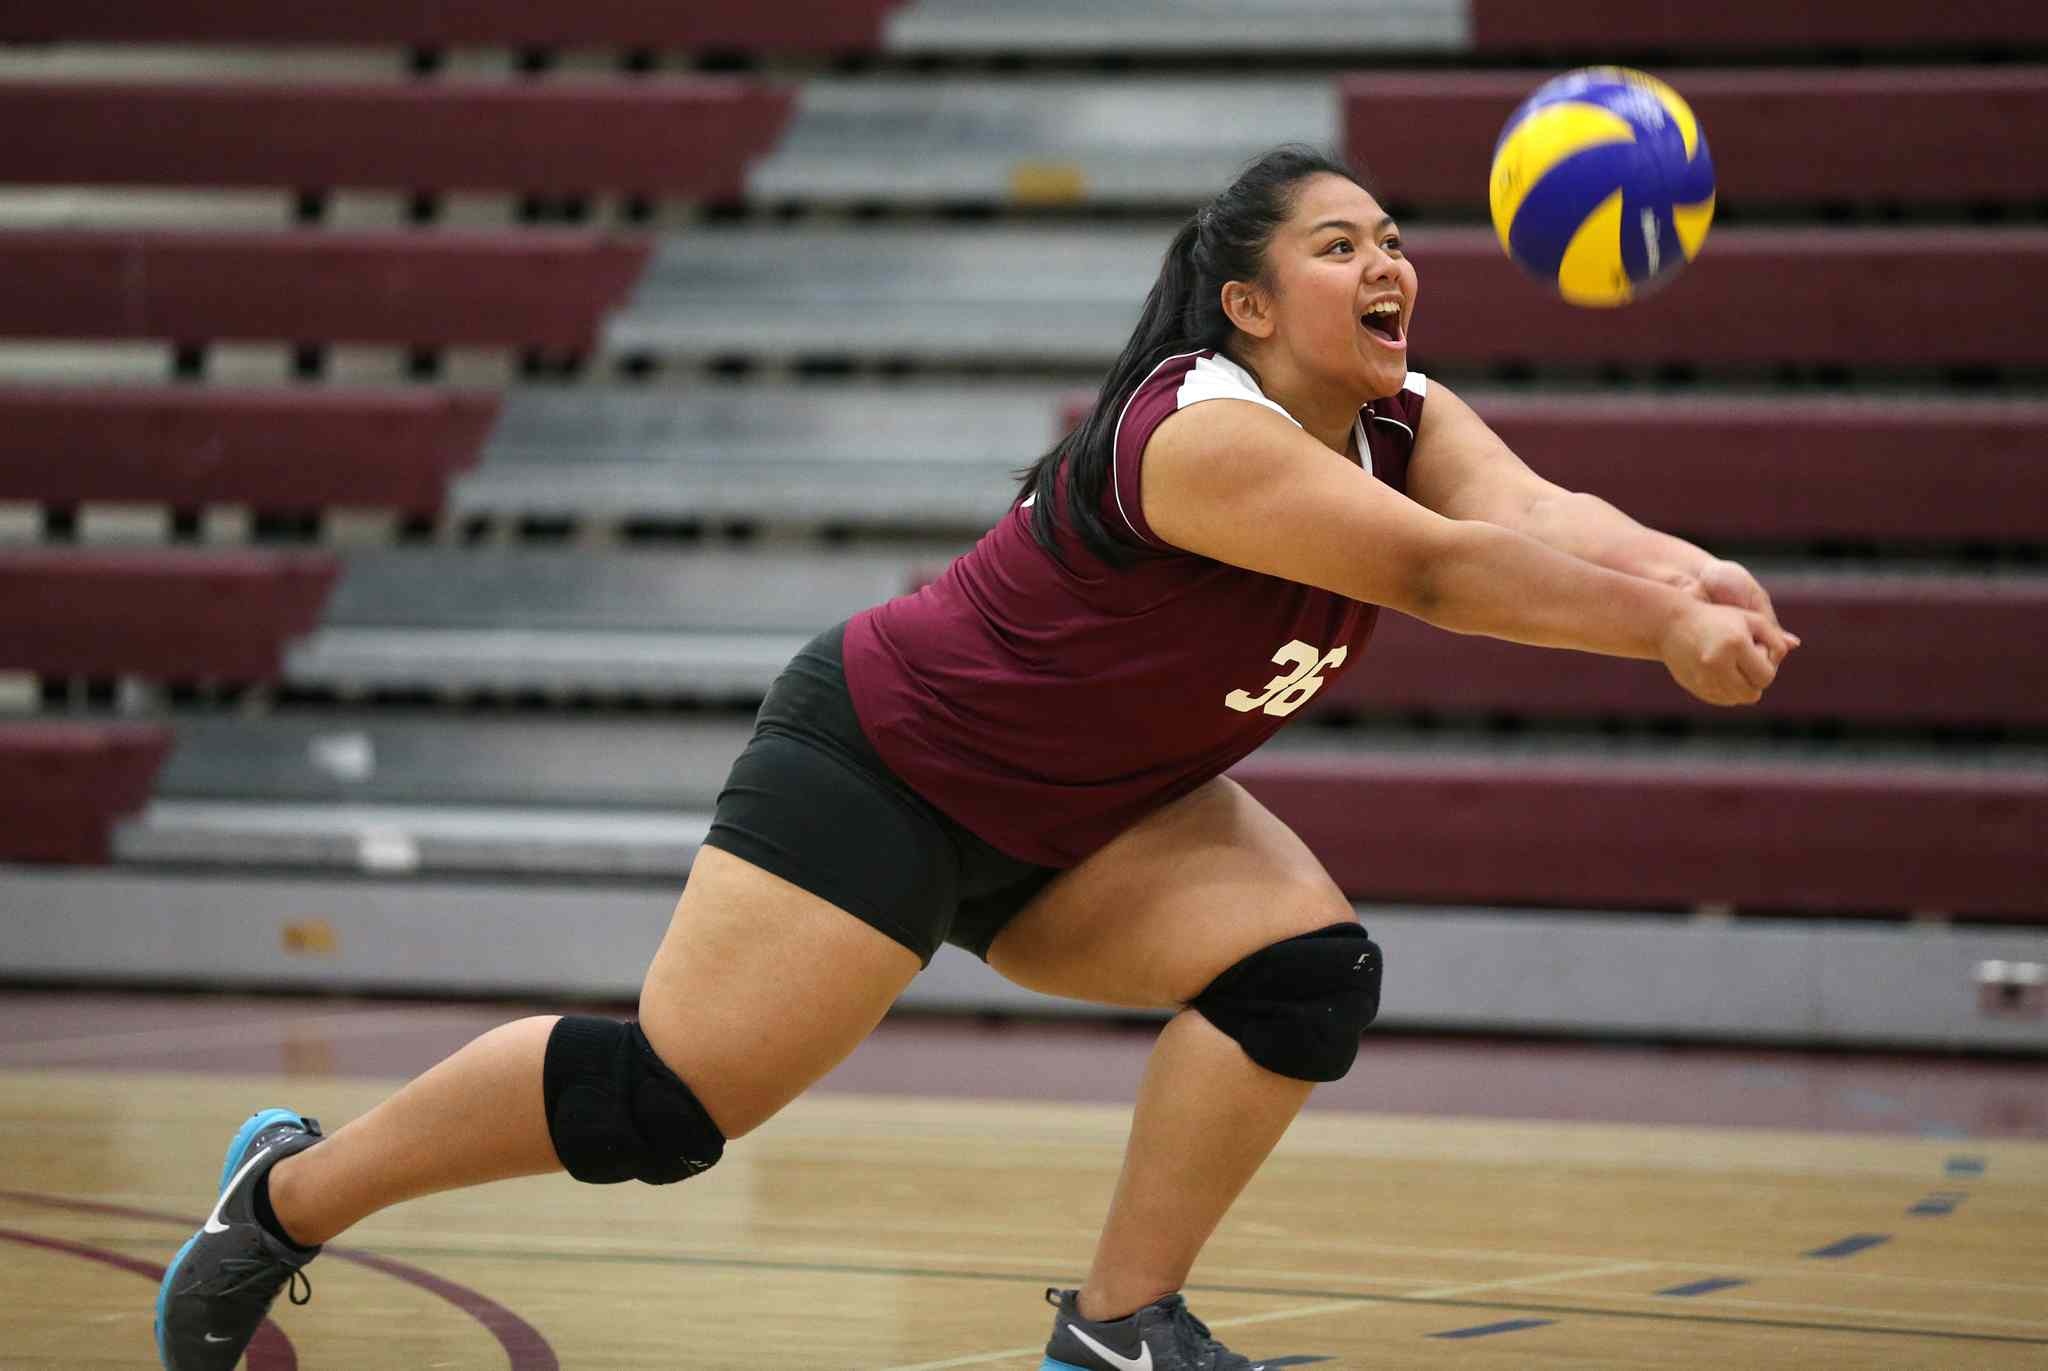 DMCI Maroons'  Abigail Ramos bumps the ball during the first set against the Grant Park Pirates.